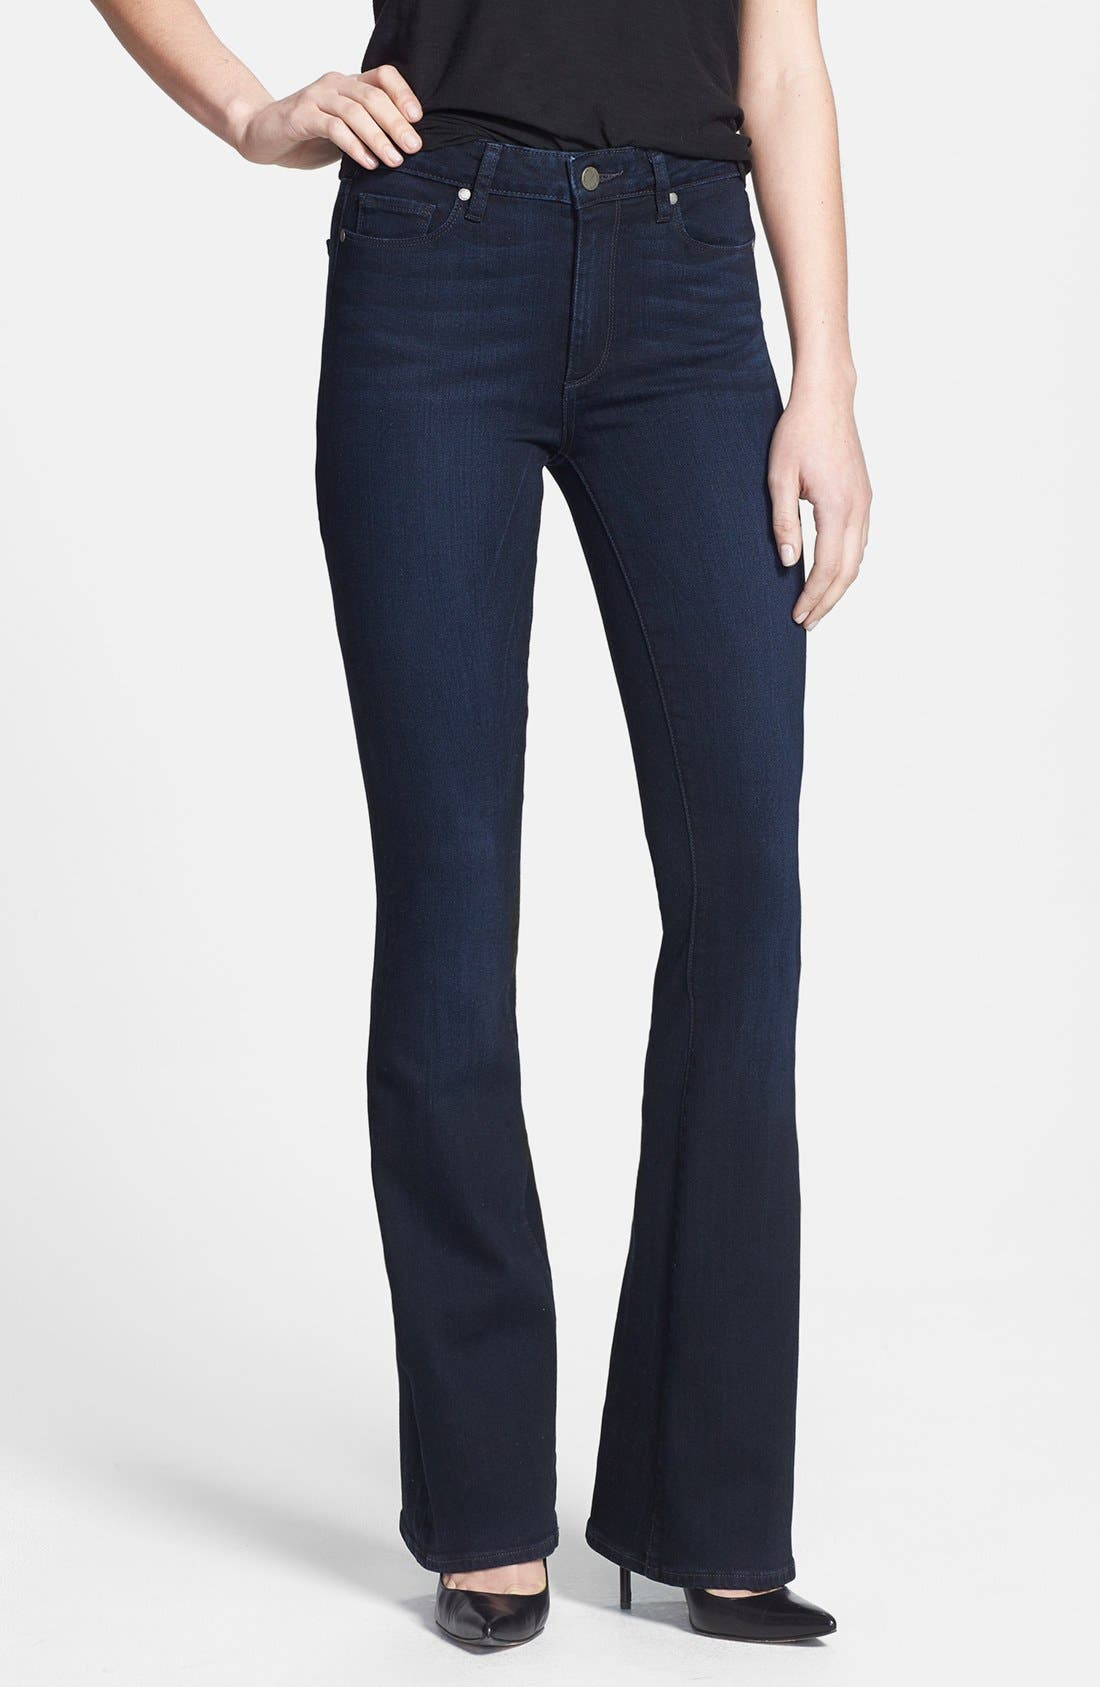 Main Image - Paige Denim 'Canyon' High Rise Bell Bottom Jeans (Peyton)